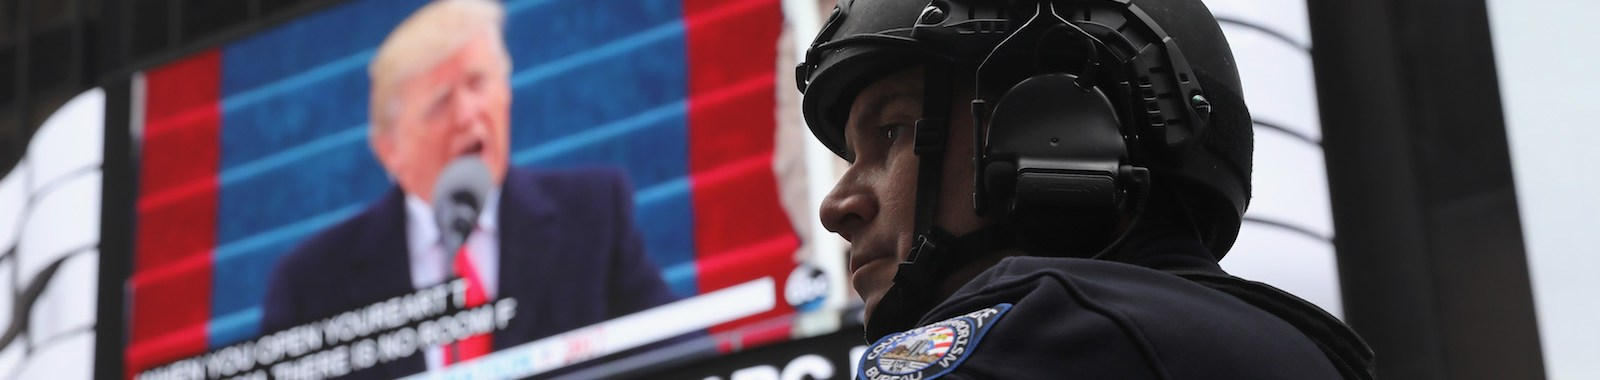 NEW YORK, NY - JANUARY 20:  A New York City policeman stands guard during the televised inauguration of Donald Trump as the 45th President of the United States while in Times Square on January 20, 2017 in New York City. People gathered at the iconic Manhattan site to watch the event outside on a large screen.  (Photo by John Moore/Getty Images)